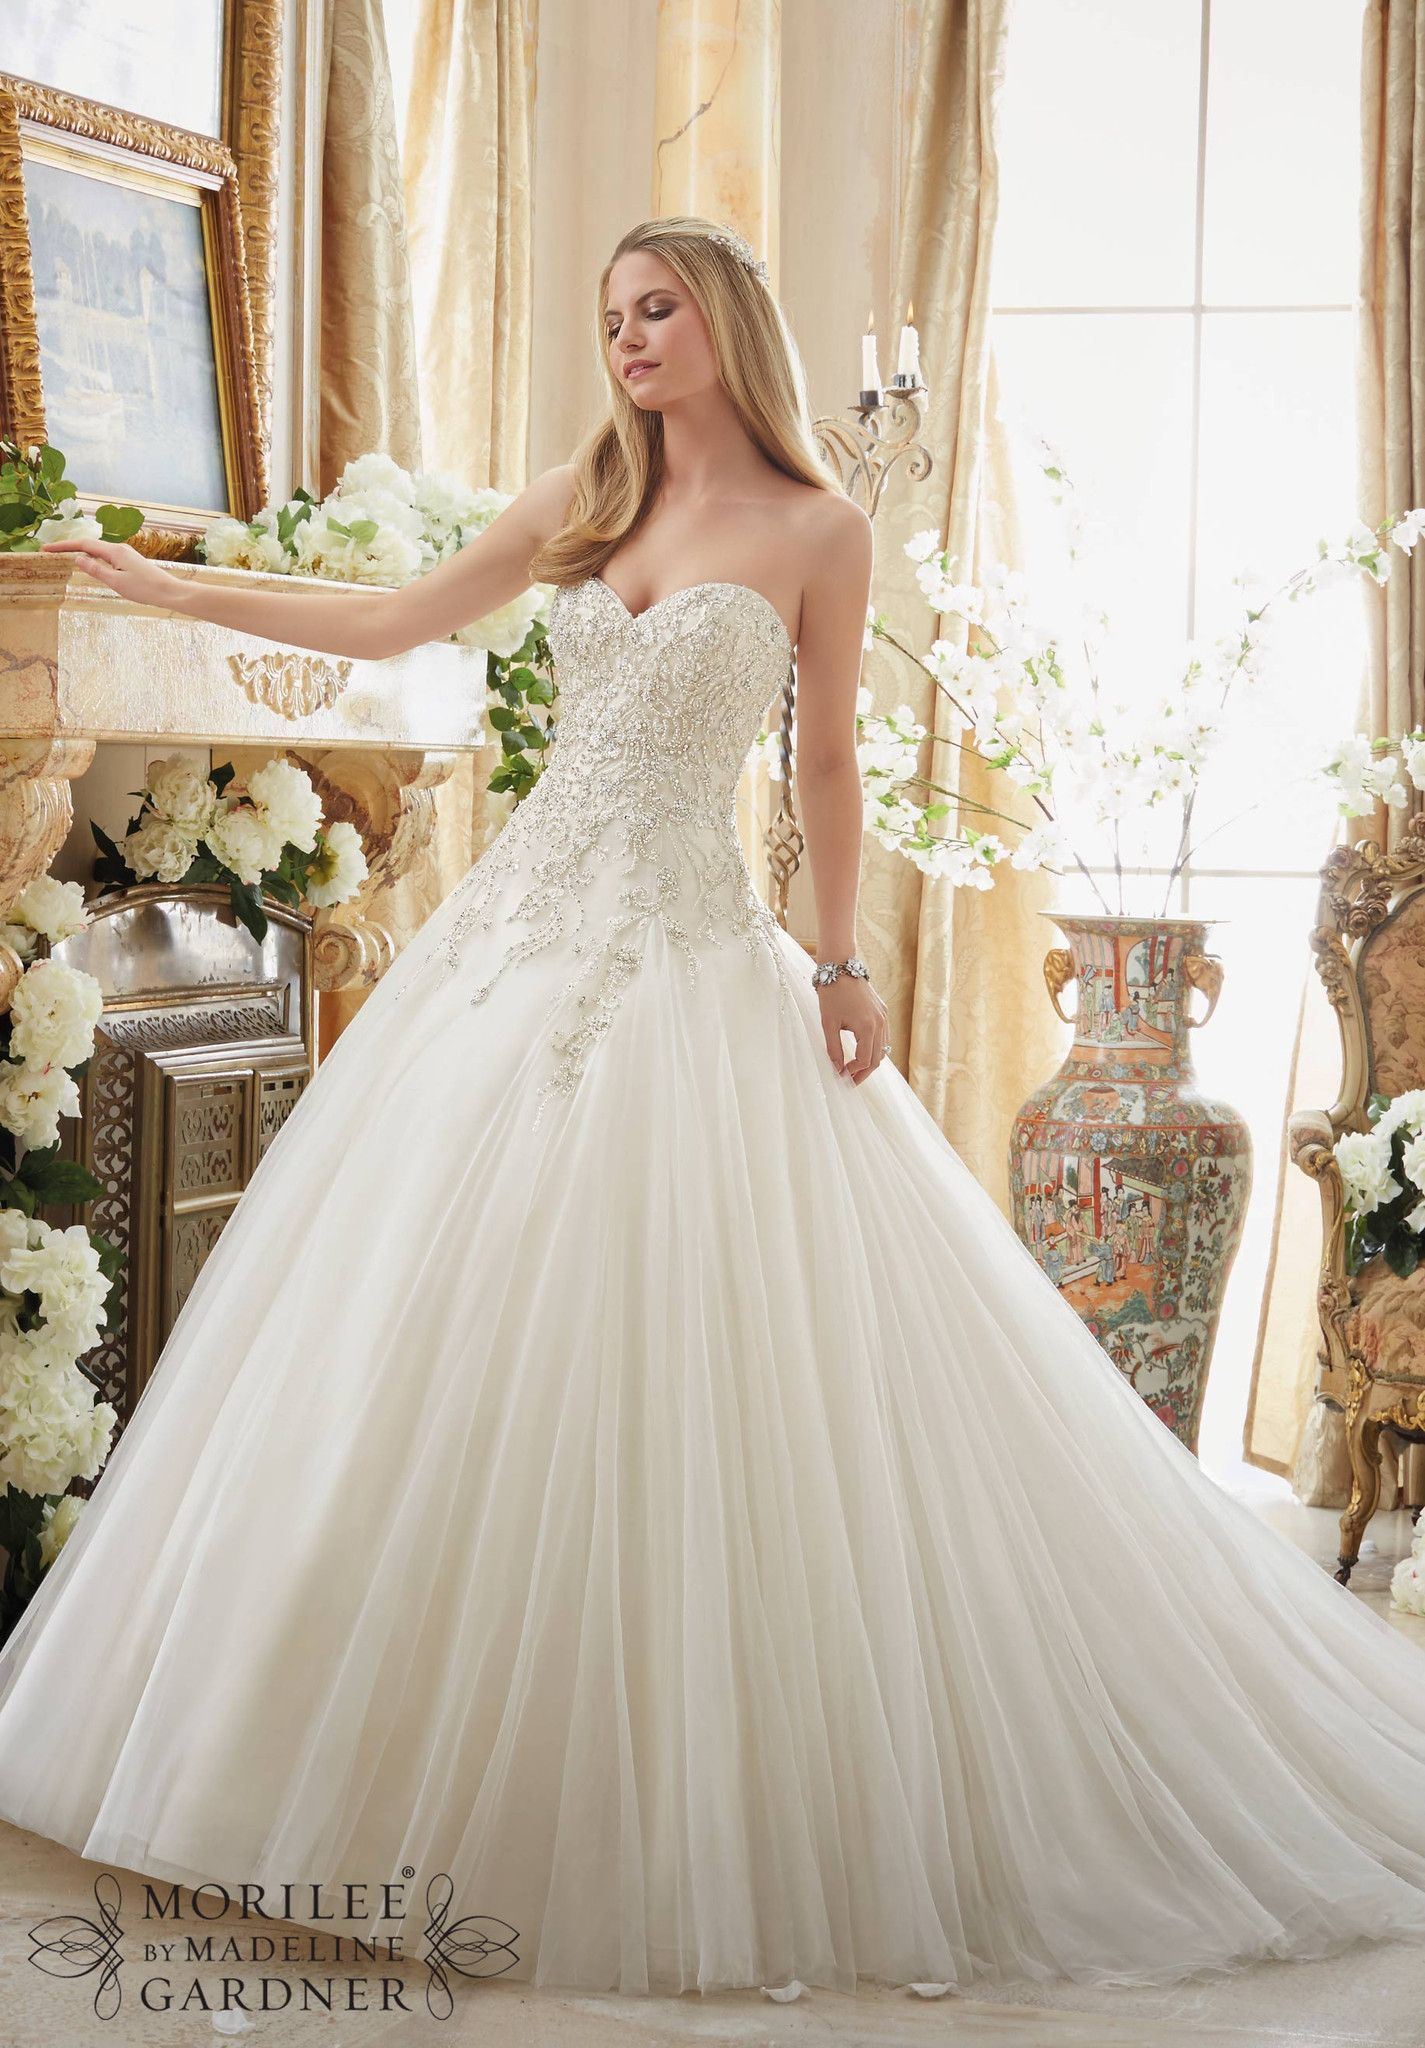 Mori Lee 2892 Strapless Beaded Bodice Ball Gown Wedding Dress W 2019